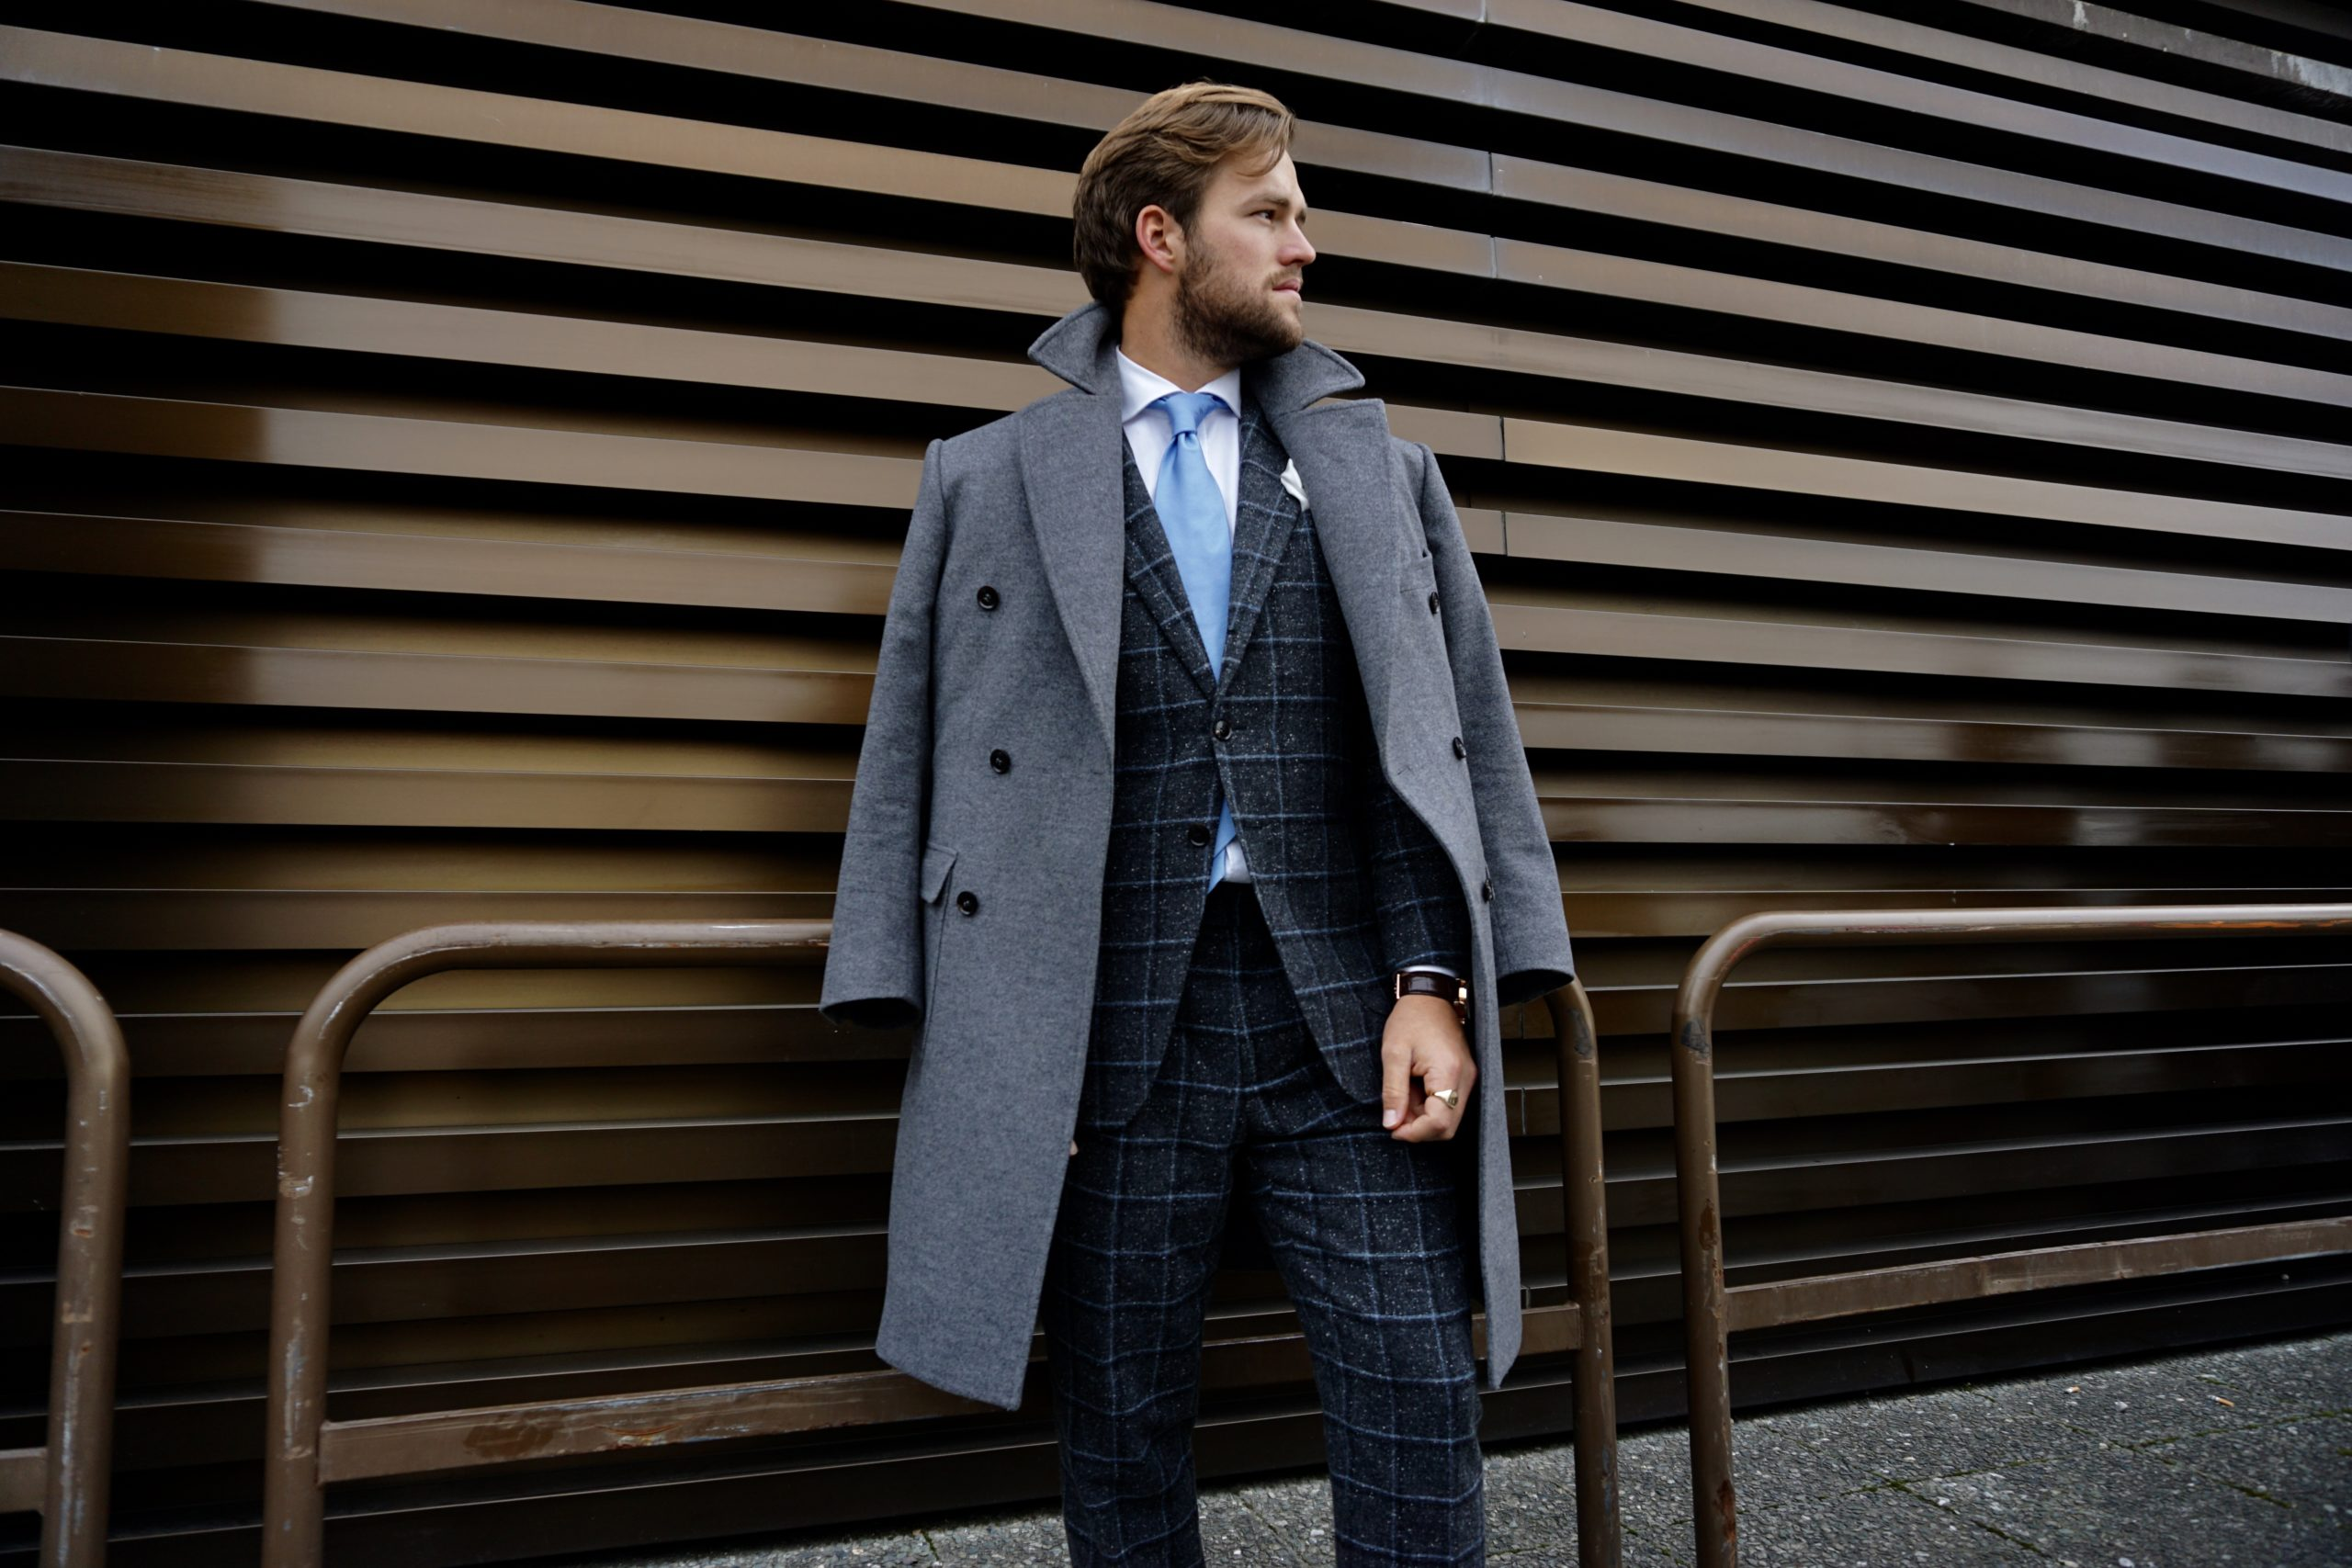 Pitti uomo checkered suit blue tie trench coat style man